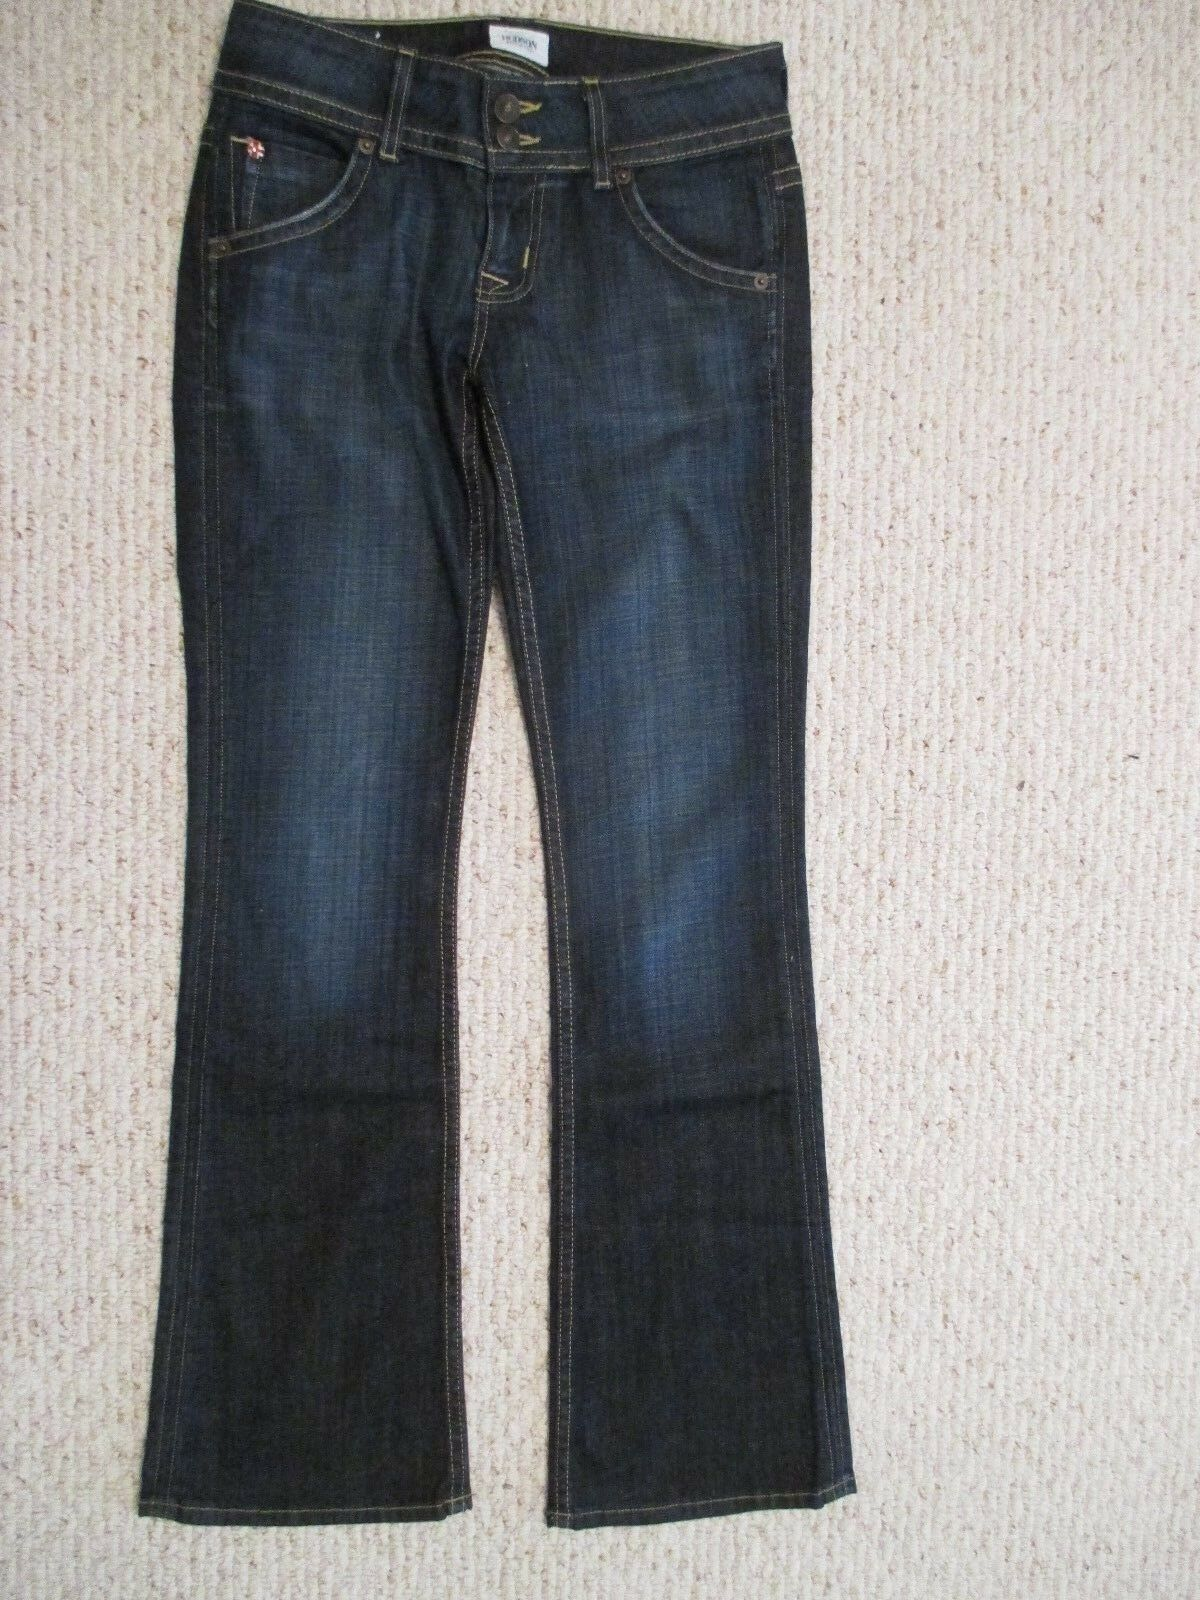 Hudson Signature Petite Boot Cut Jeans Size 26 X 31  color Elm